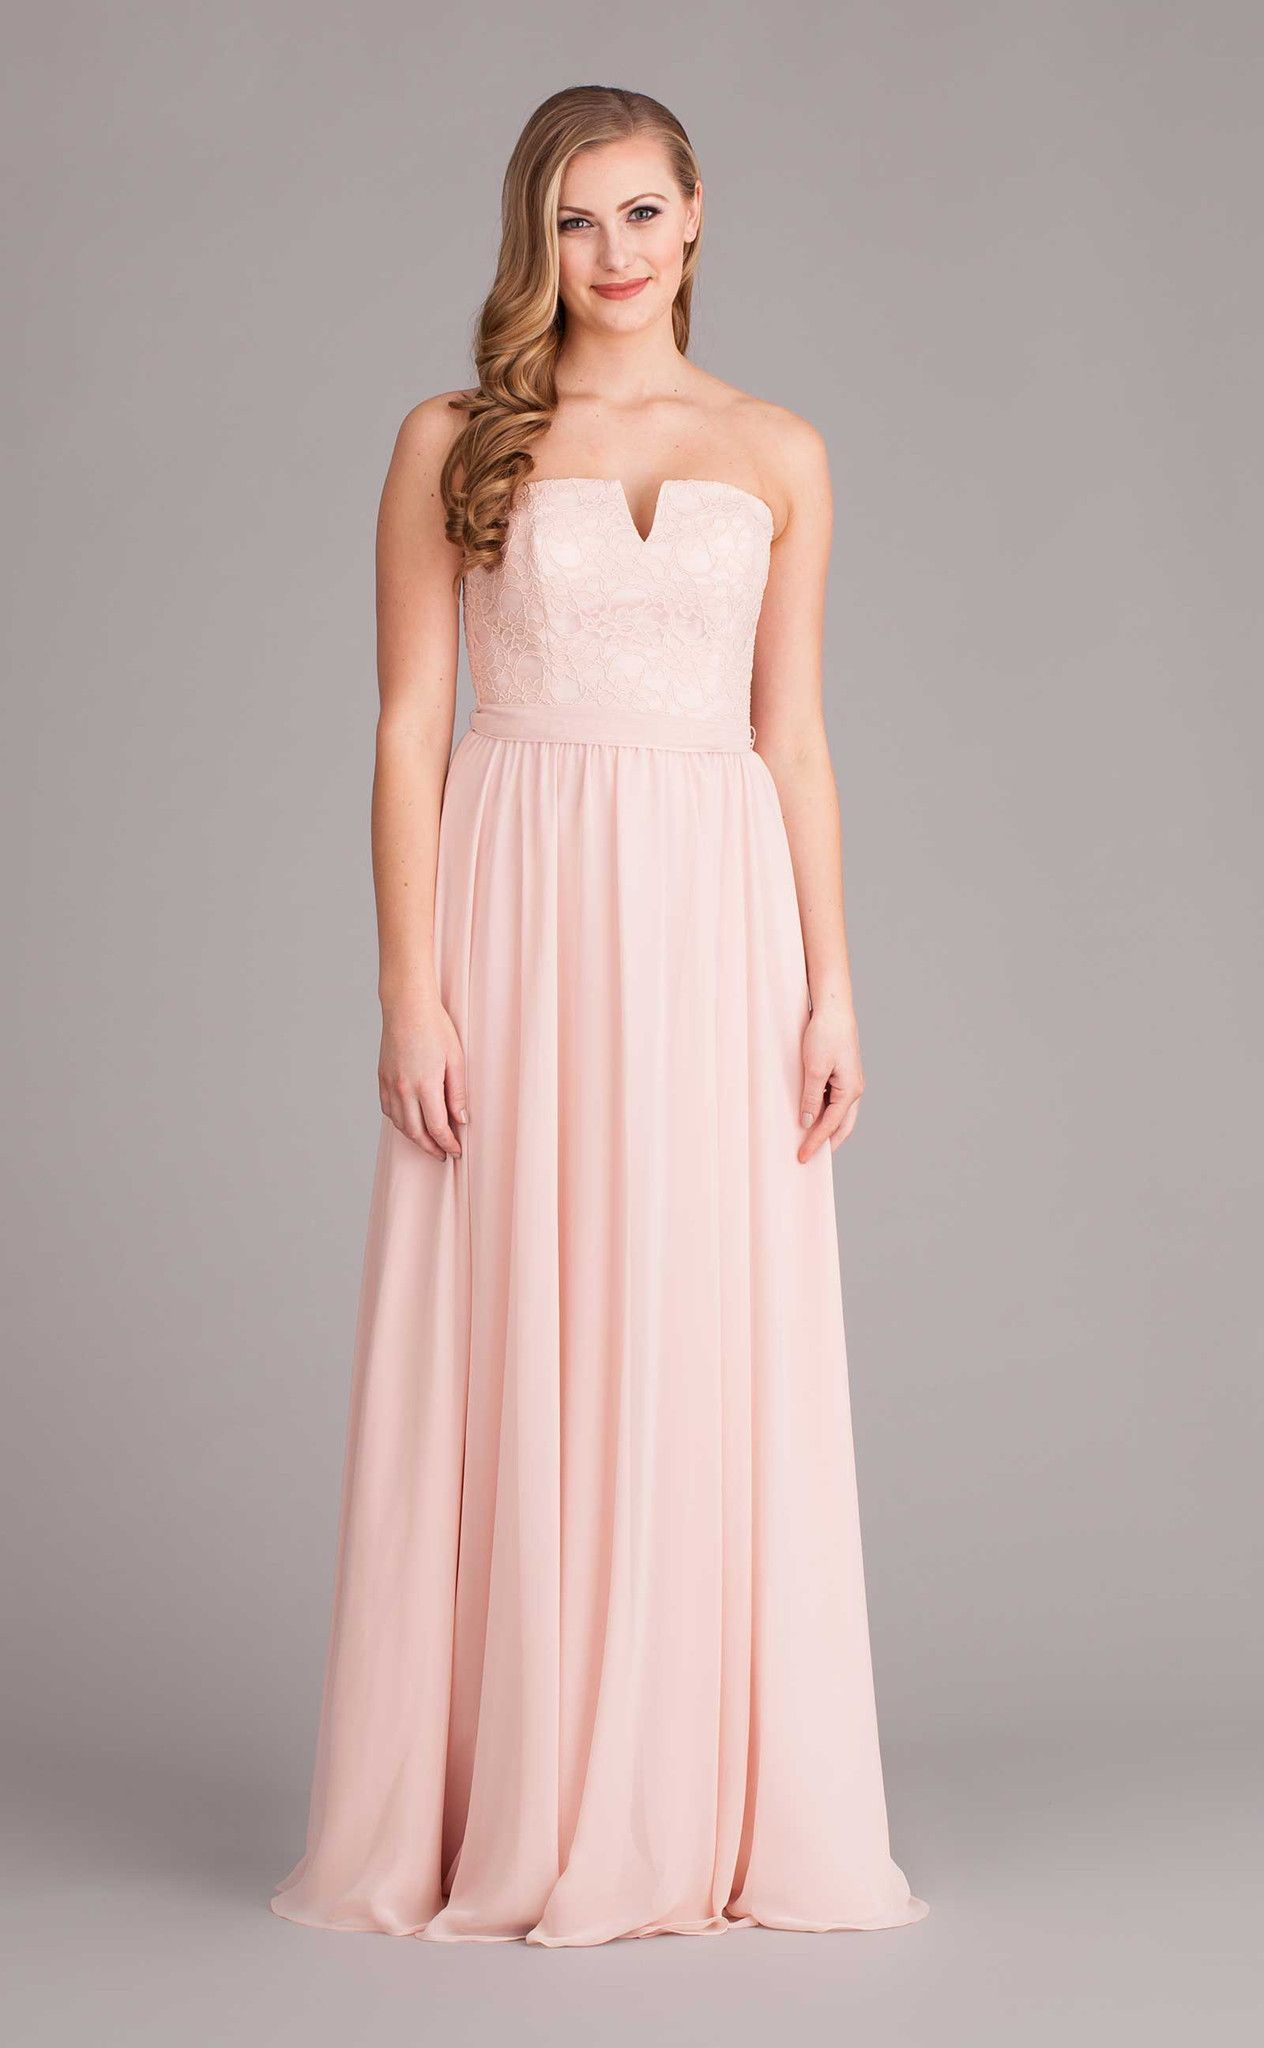 A unique strapless bridesmaid dress that\'s stunning in Blush ...